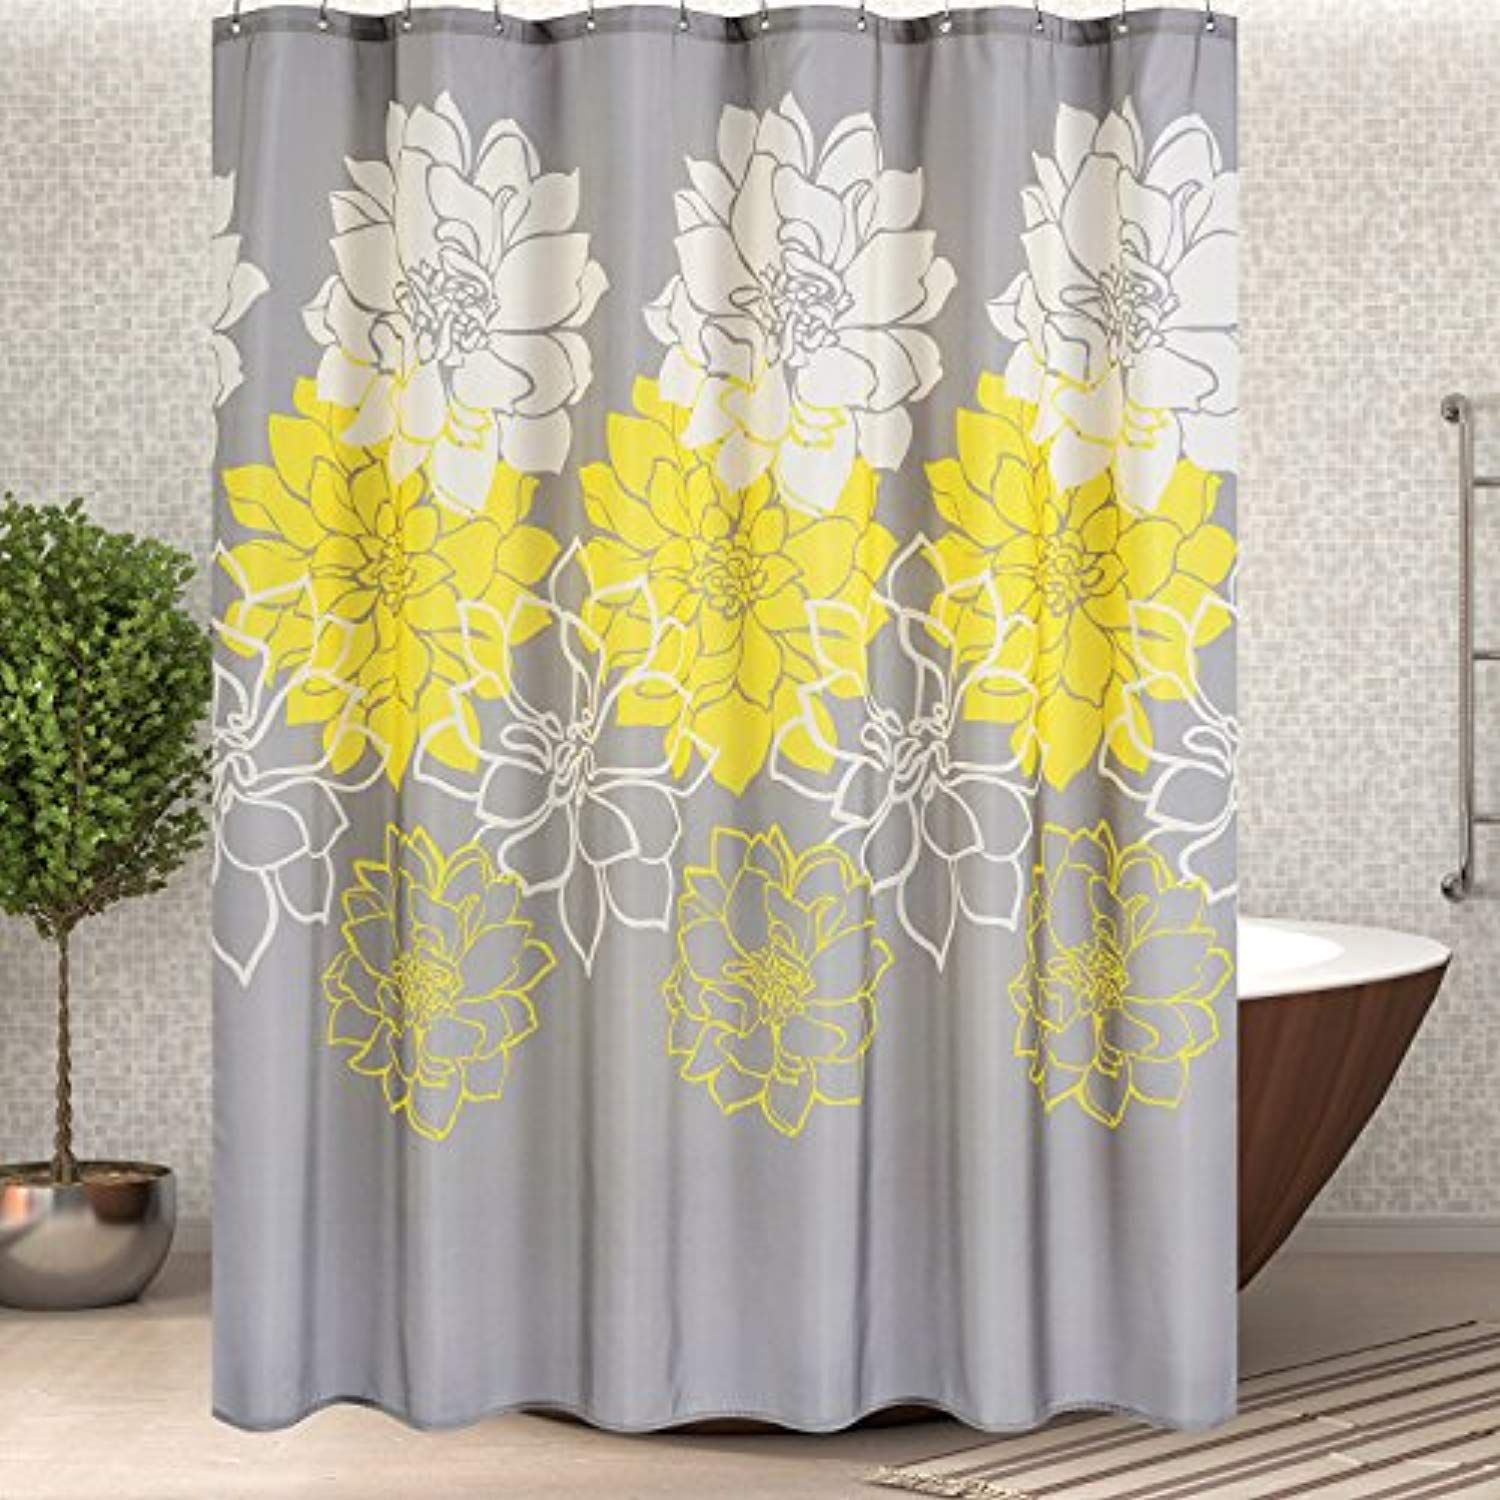 Wimaha Floral Fabric Shower Curtain Mildew Resistant Water